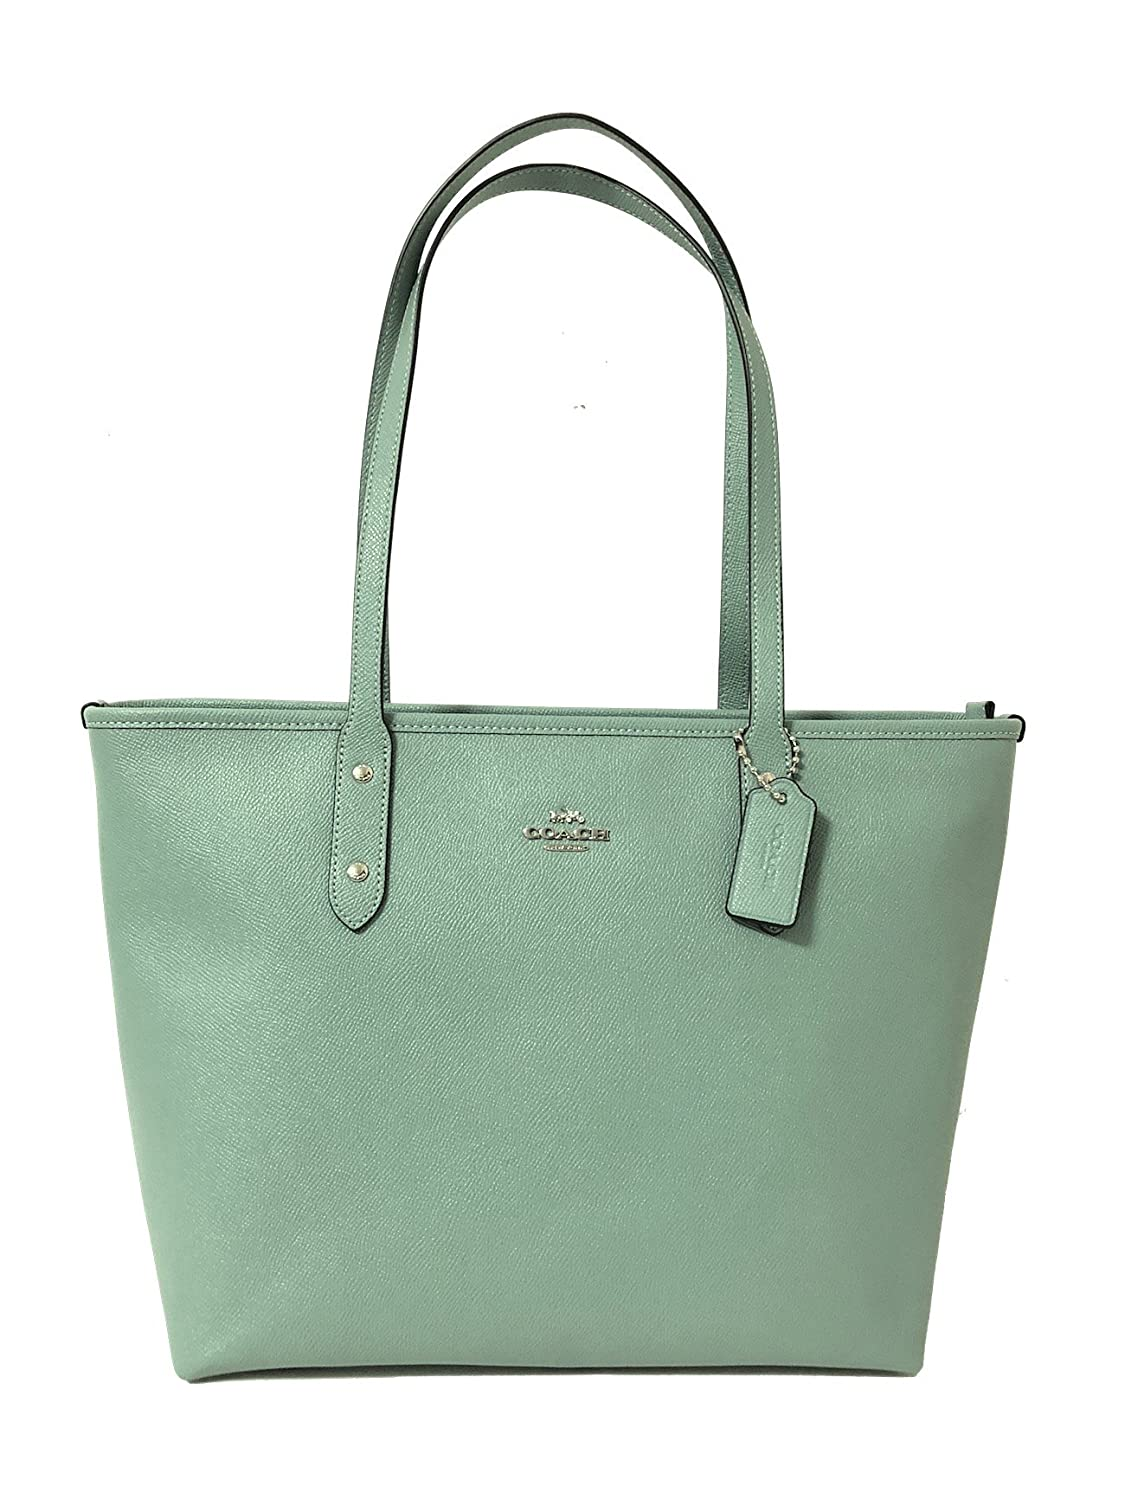 c909de0972 Amazon.com  COACH CITY ZIP TOTE